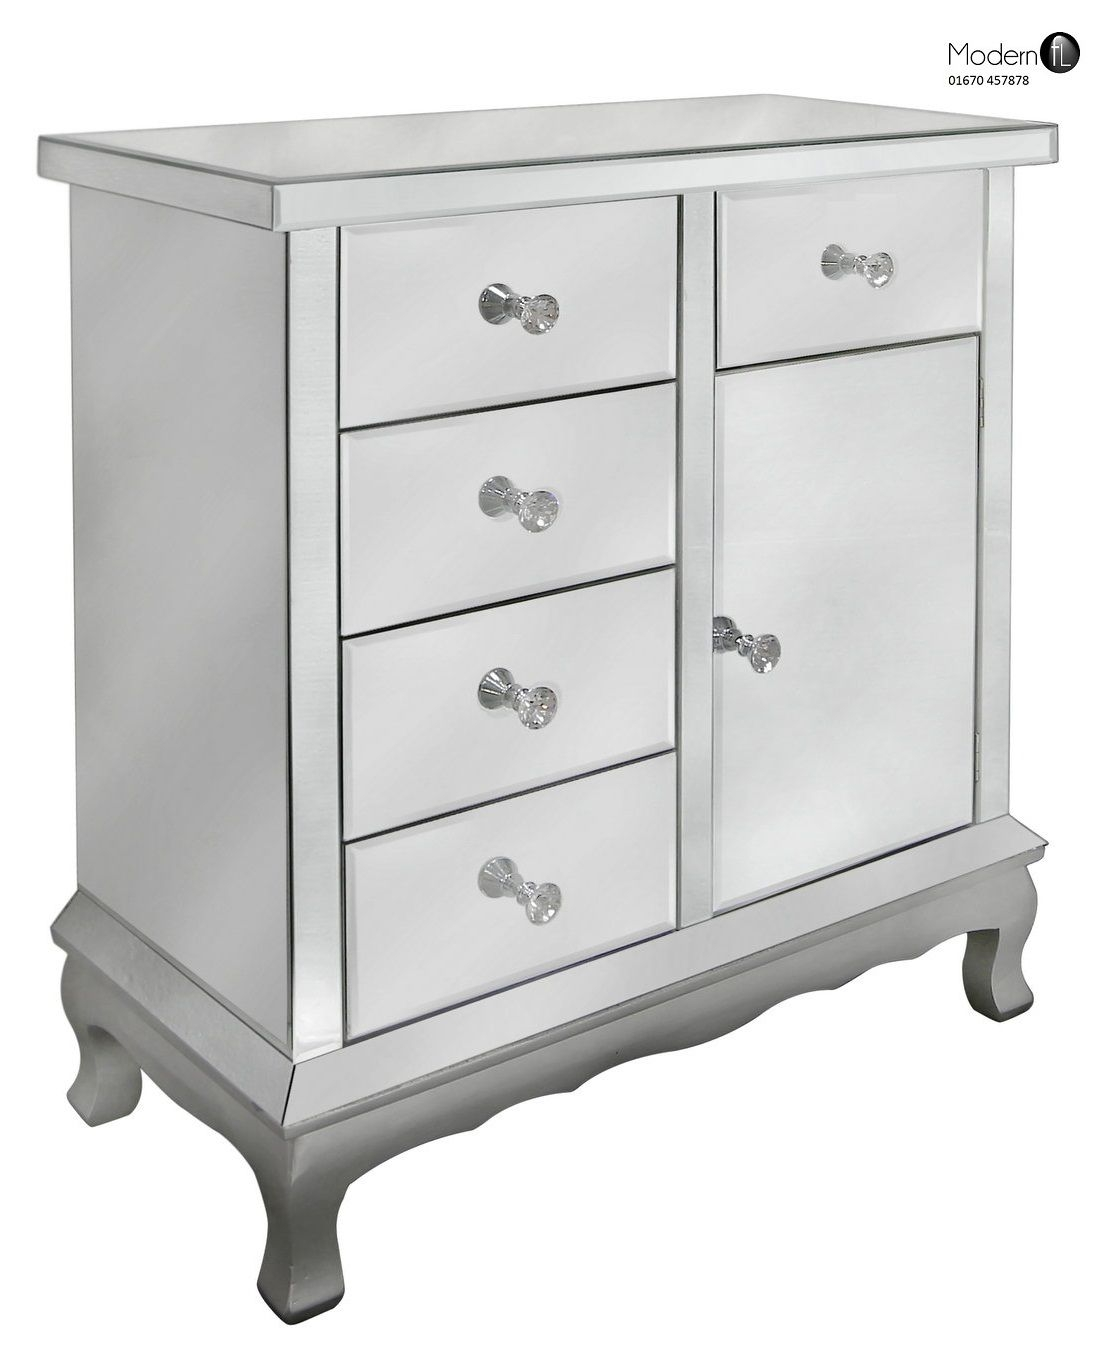 Contemporary Venetian Mirrored Sideboard With 4 Drawers And 1 Door In Venetian Mirrored Sideboard (Image 3 of 15)